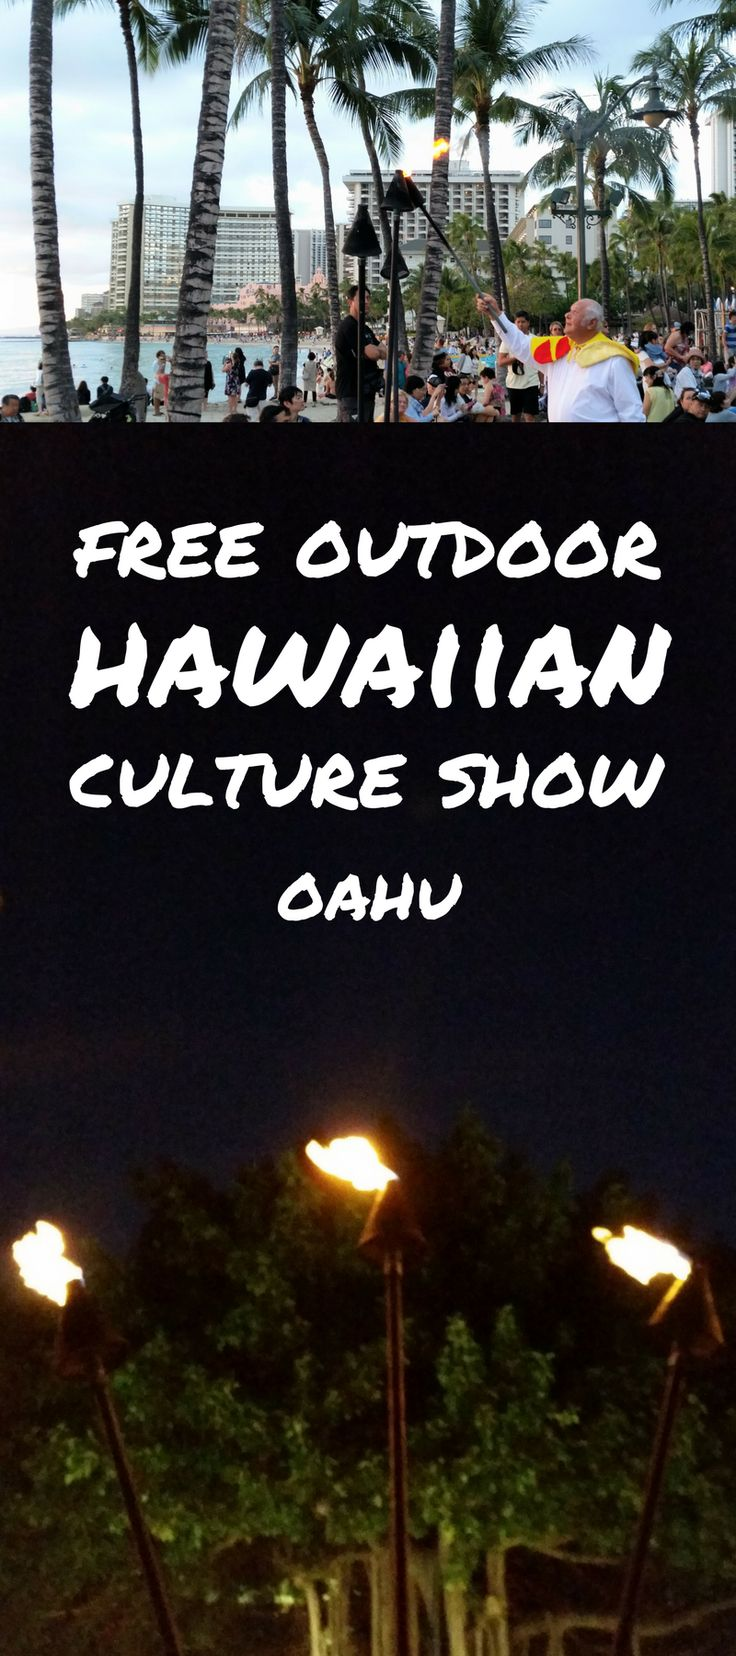 For free things to do on Oahu that gives a taste of Hawaii culture activities, have a look at a hula show on the beach in Waikiki with authentic Hawaiian music and dancers! Taking place in the evening at sunset on the beach, it's the perfect end to a day full of adventure after hiking that makes for a family-friendly activity near Honolulu and Waikiki shopping and food restaurants during Hawaii vacation.. #hawaii #oahu #waikiki